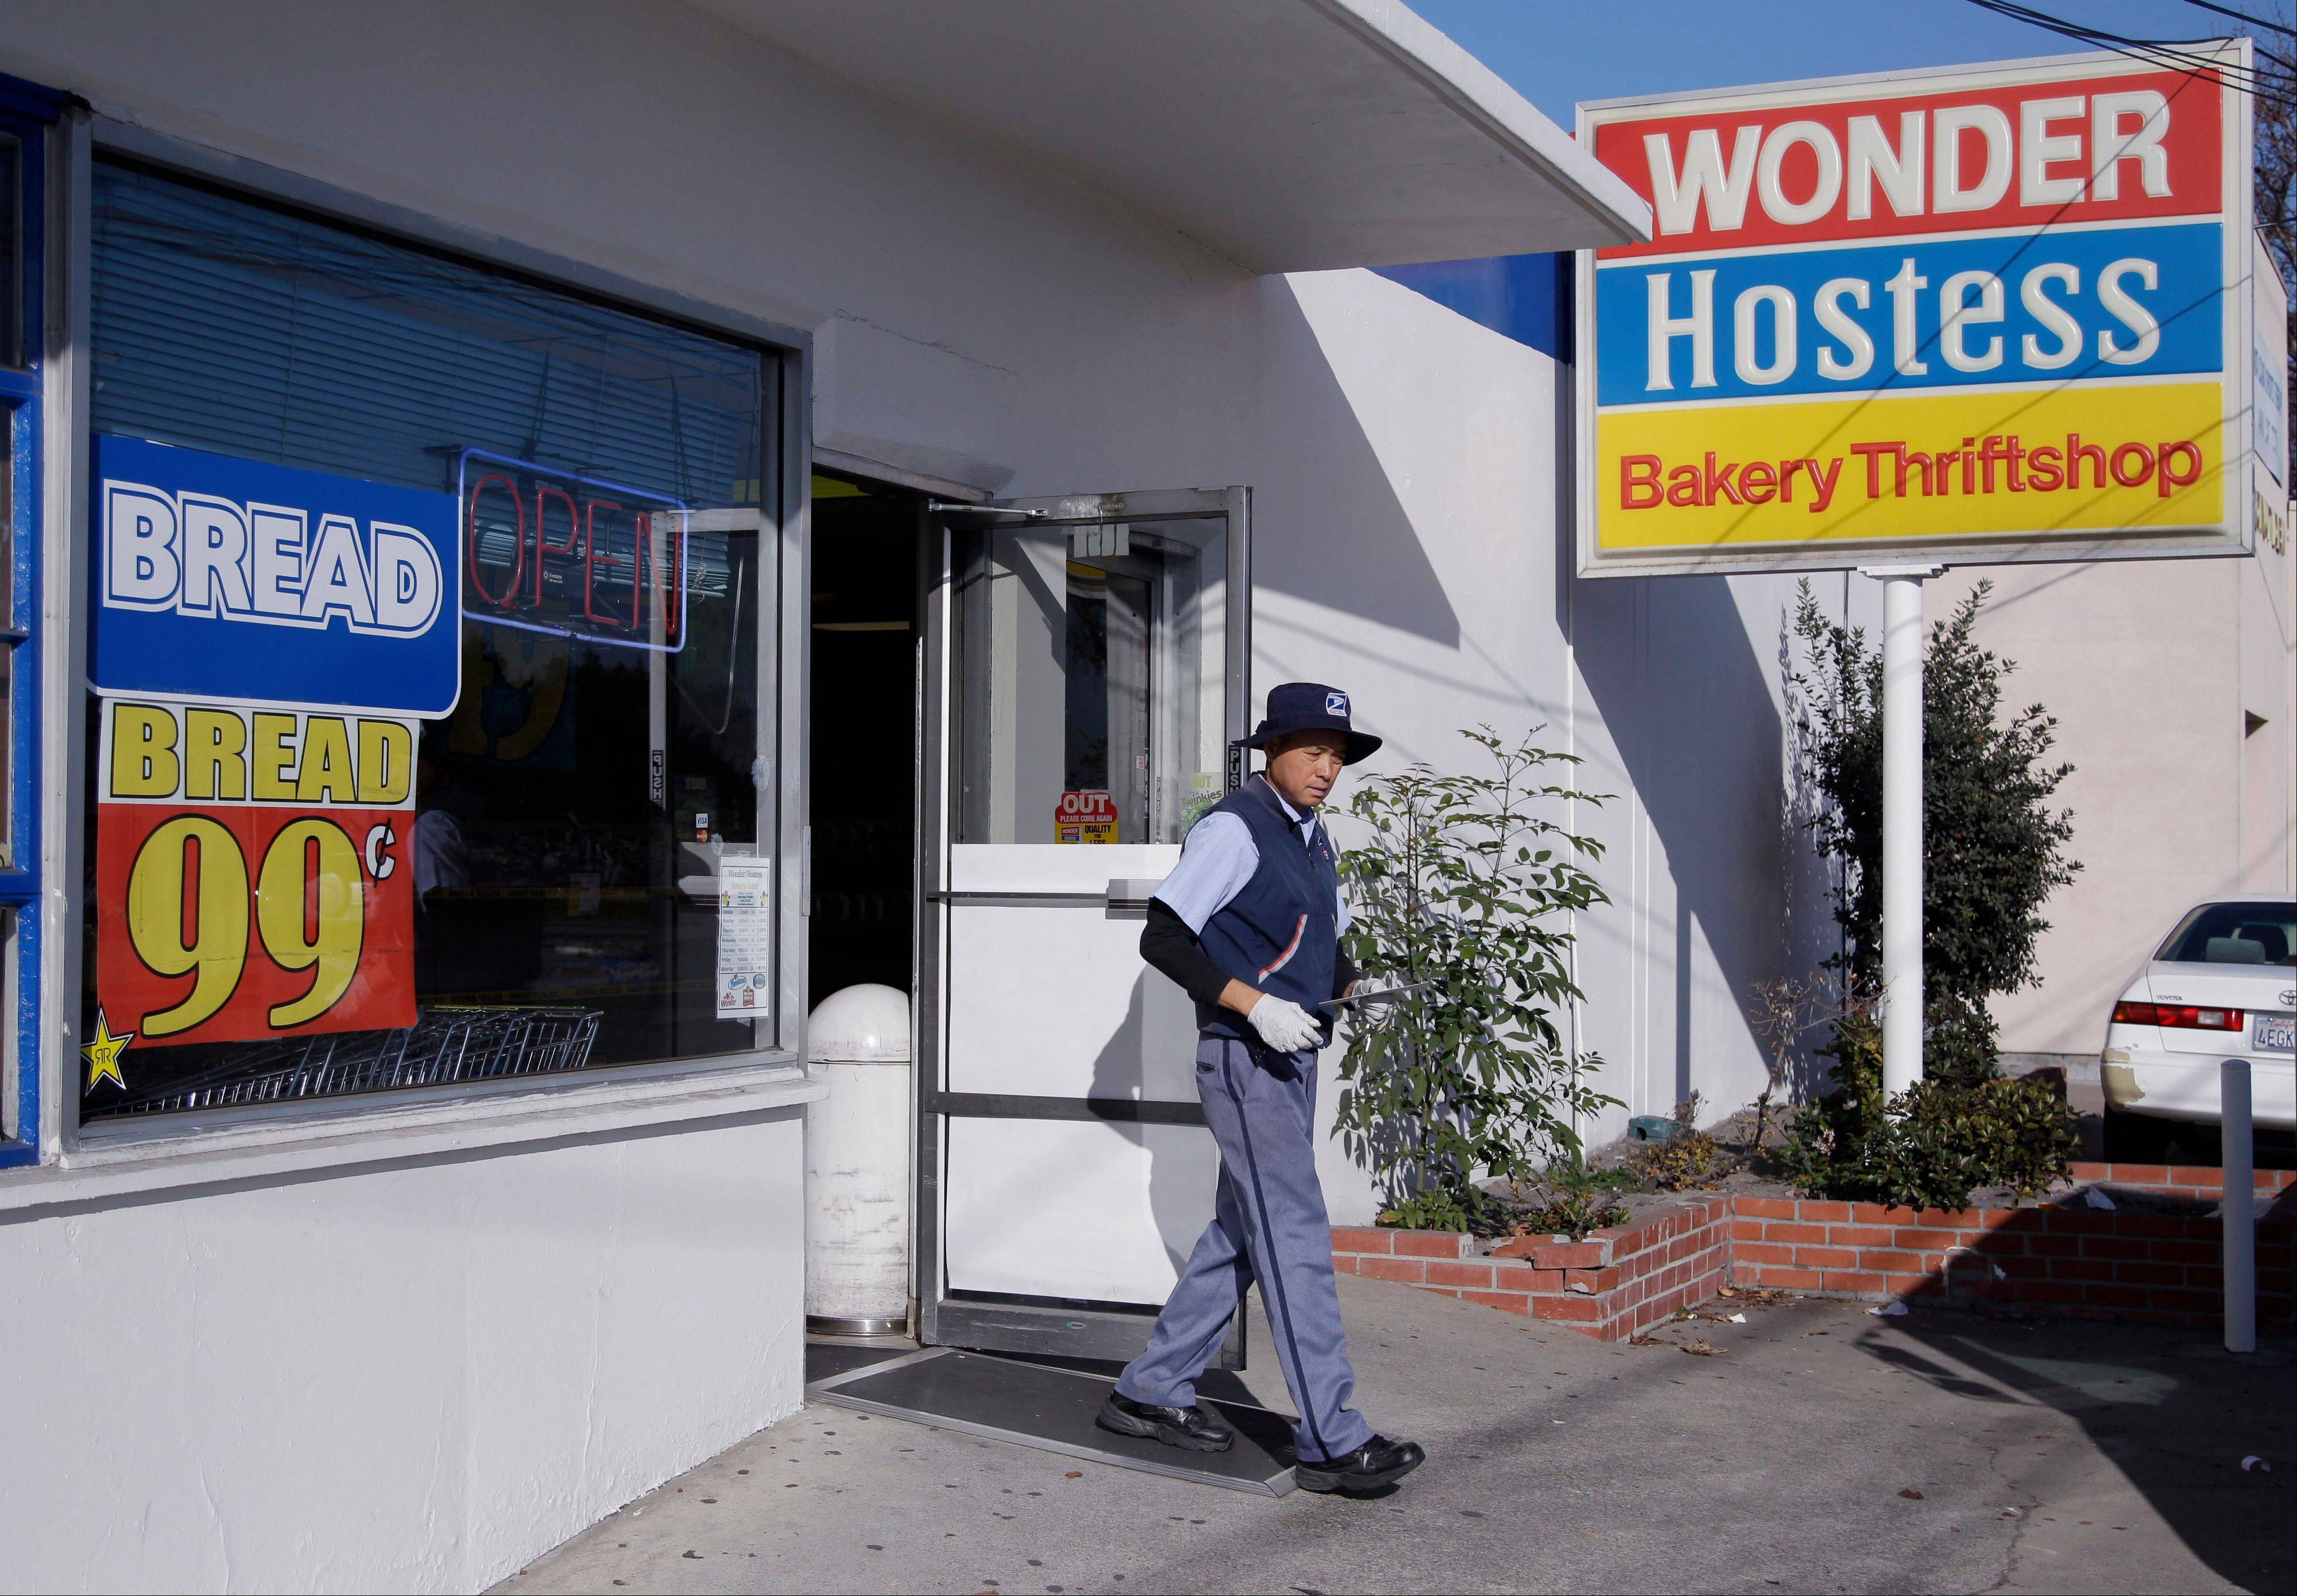 A postal worker leaves a Hostess Wonder grocery store in Santa Clara, Calif.